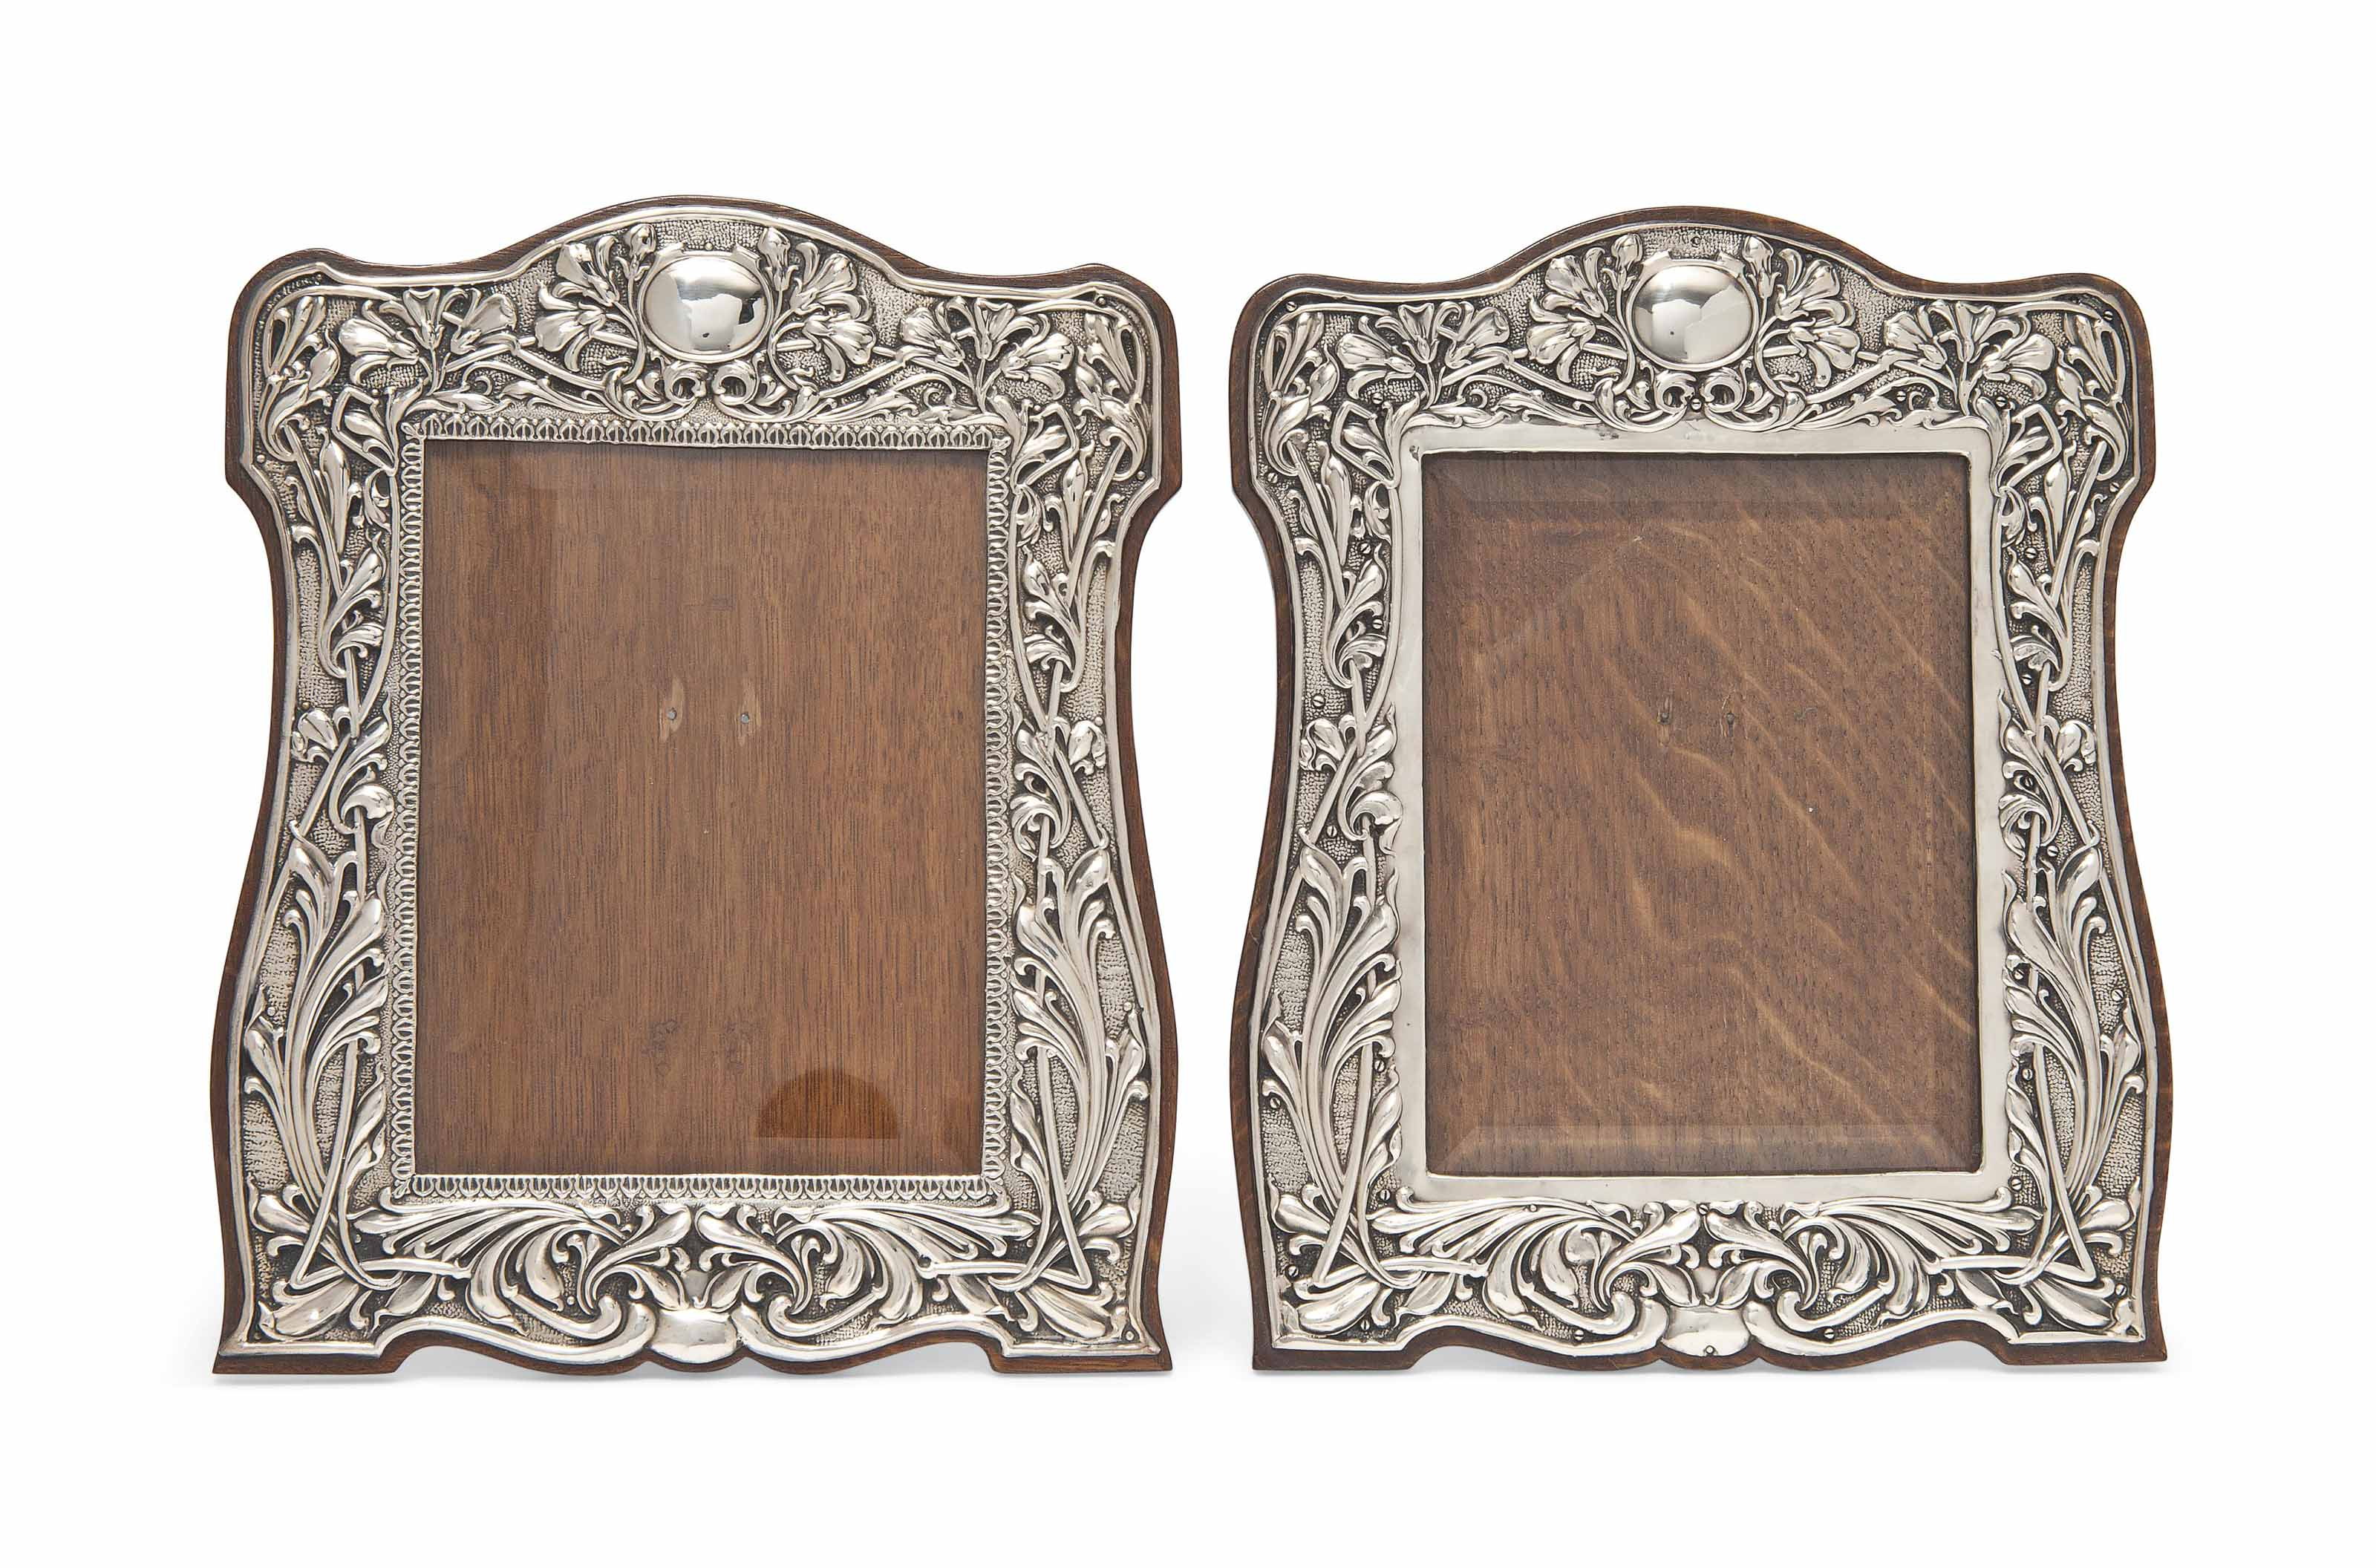 A NEAR PAIR OR EDWARDIAN SILVER AND OAK PHOTOGRAPH FRAMES